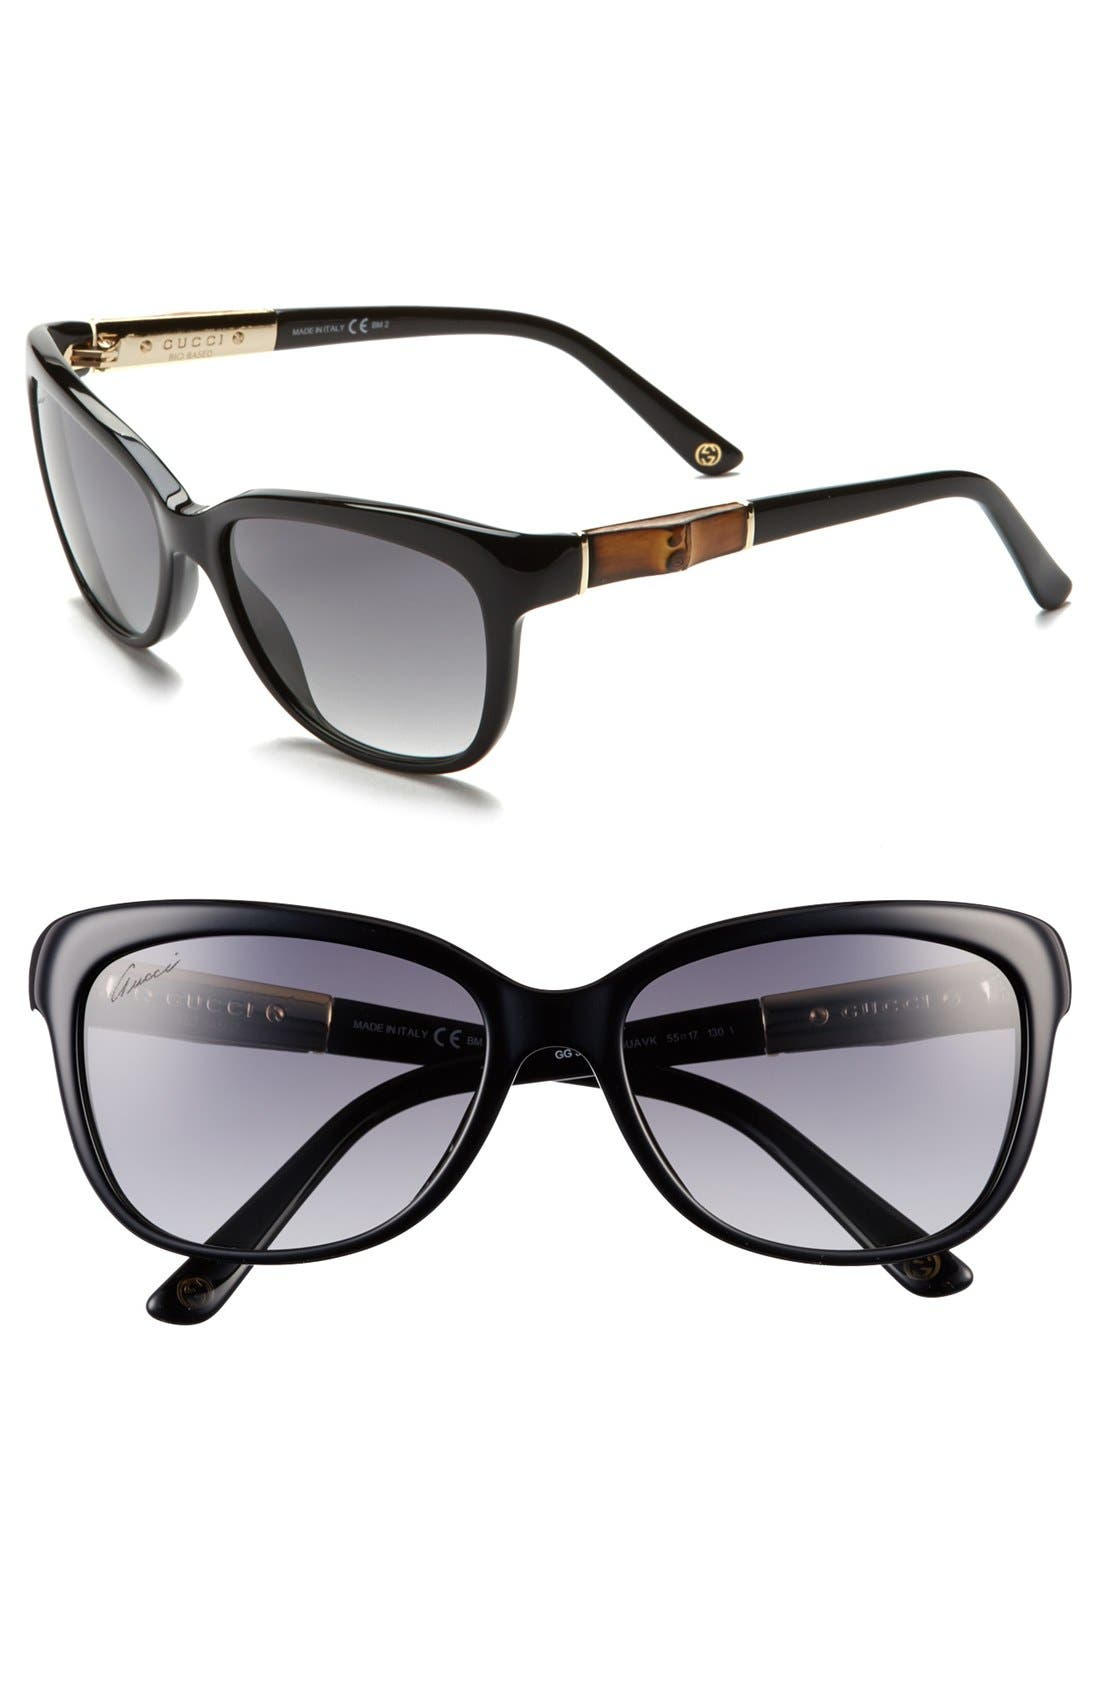 Main Image - Gucci 55mm Bamboo Temple Sunglasses